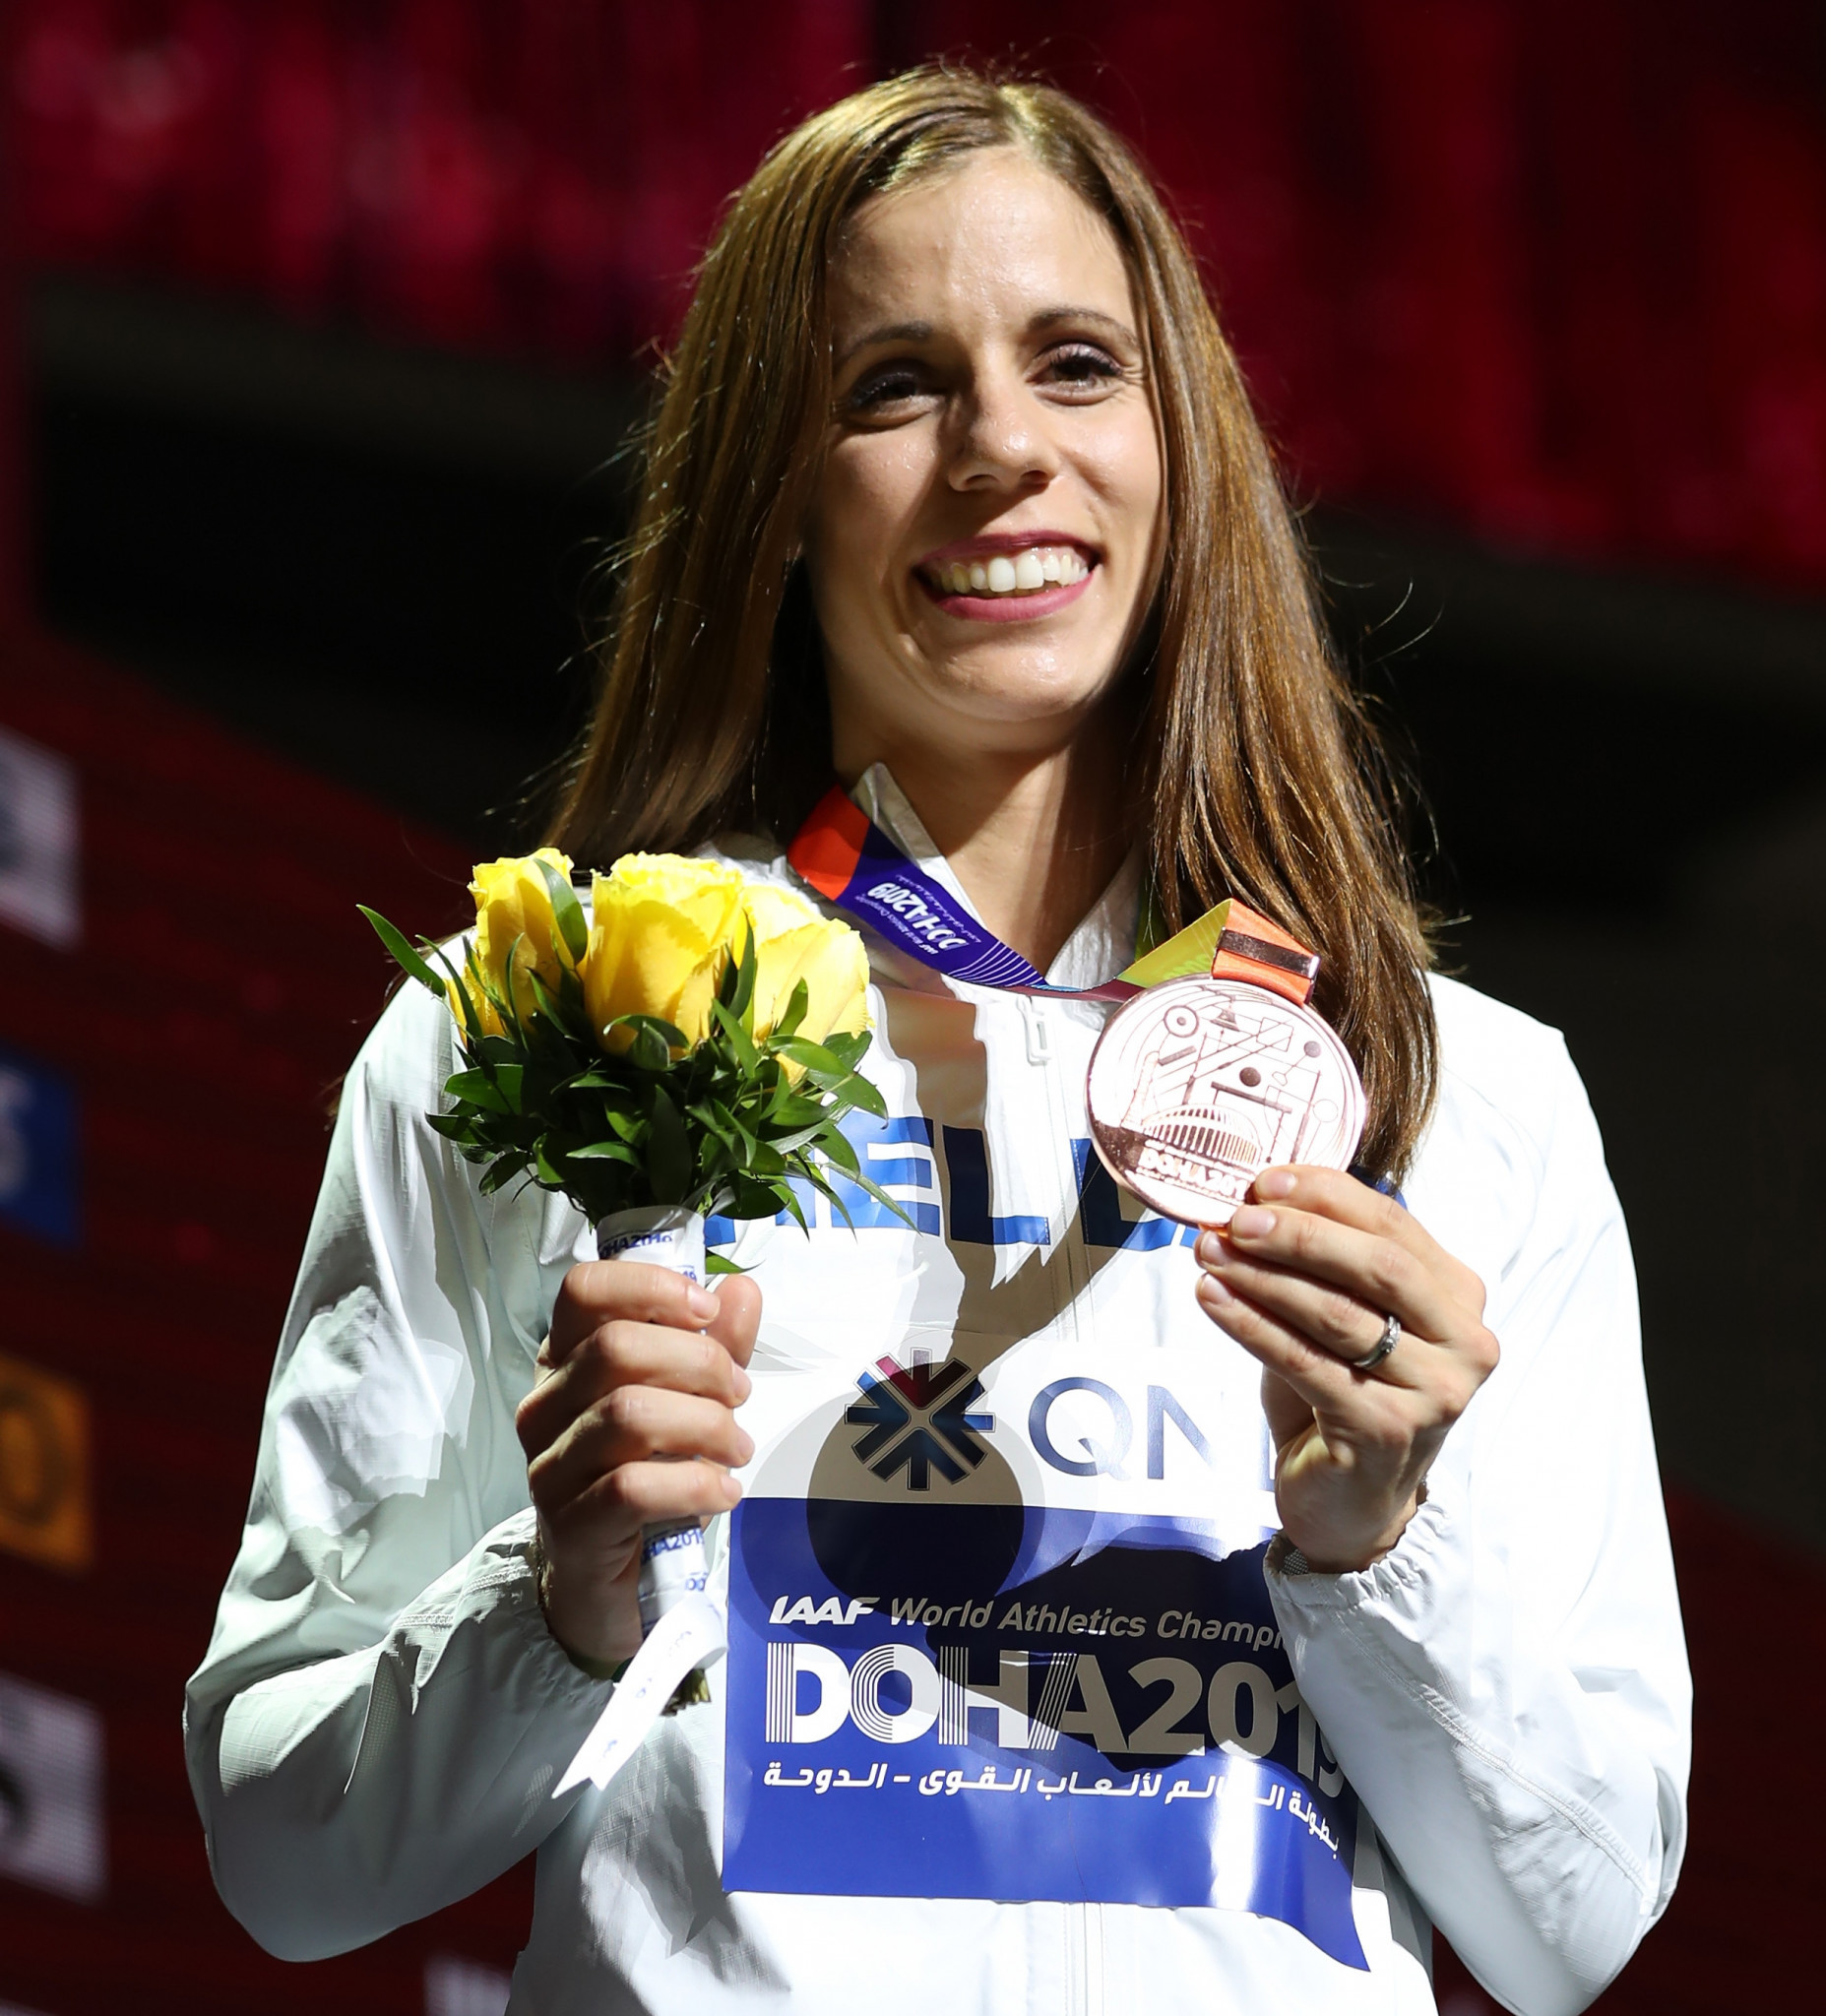 Greece's Olympic pole vault champion Katerina Stefanidi is standing for election to the IOC Athletes' Commission, it has been announced ©Getty Images